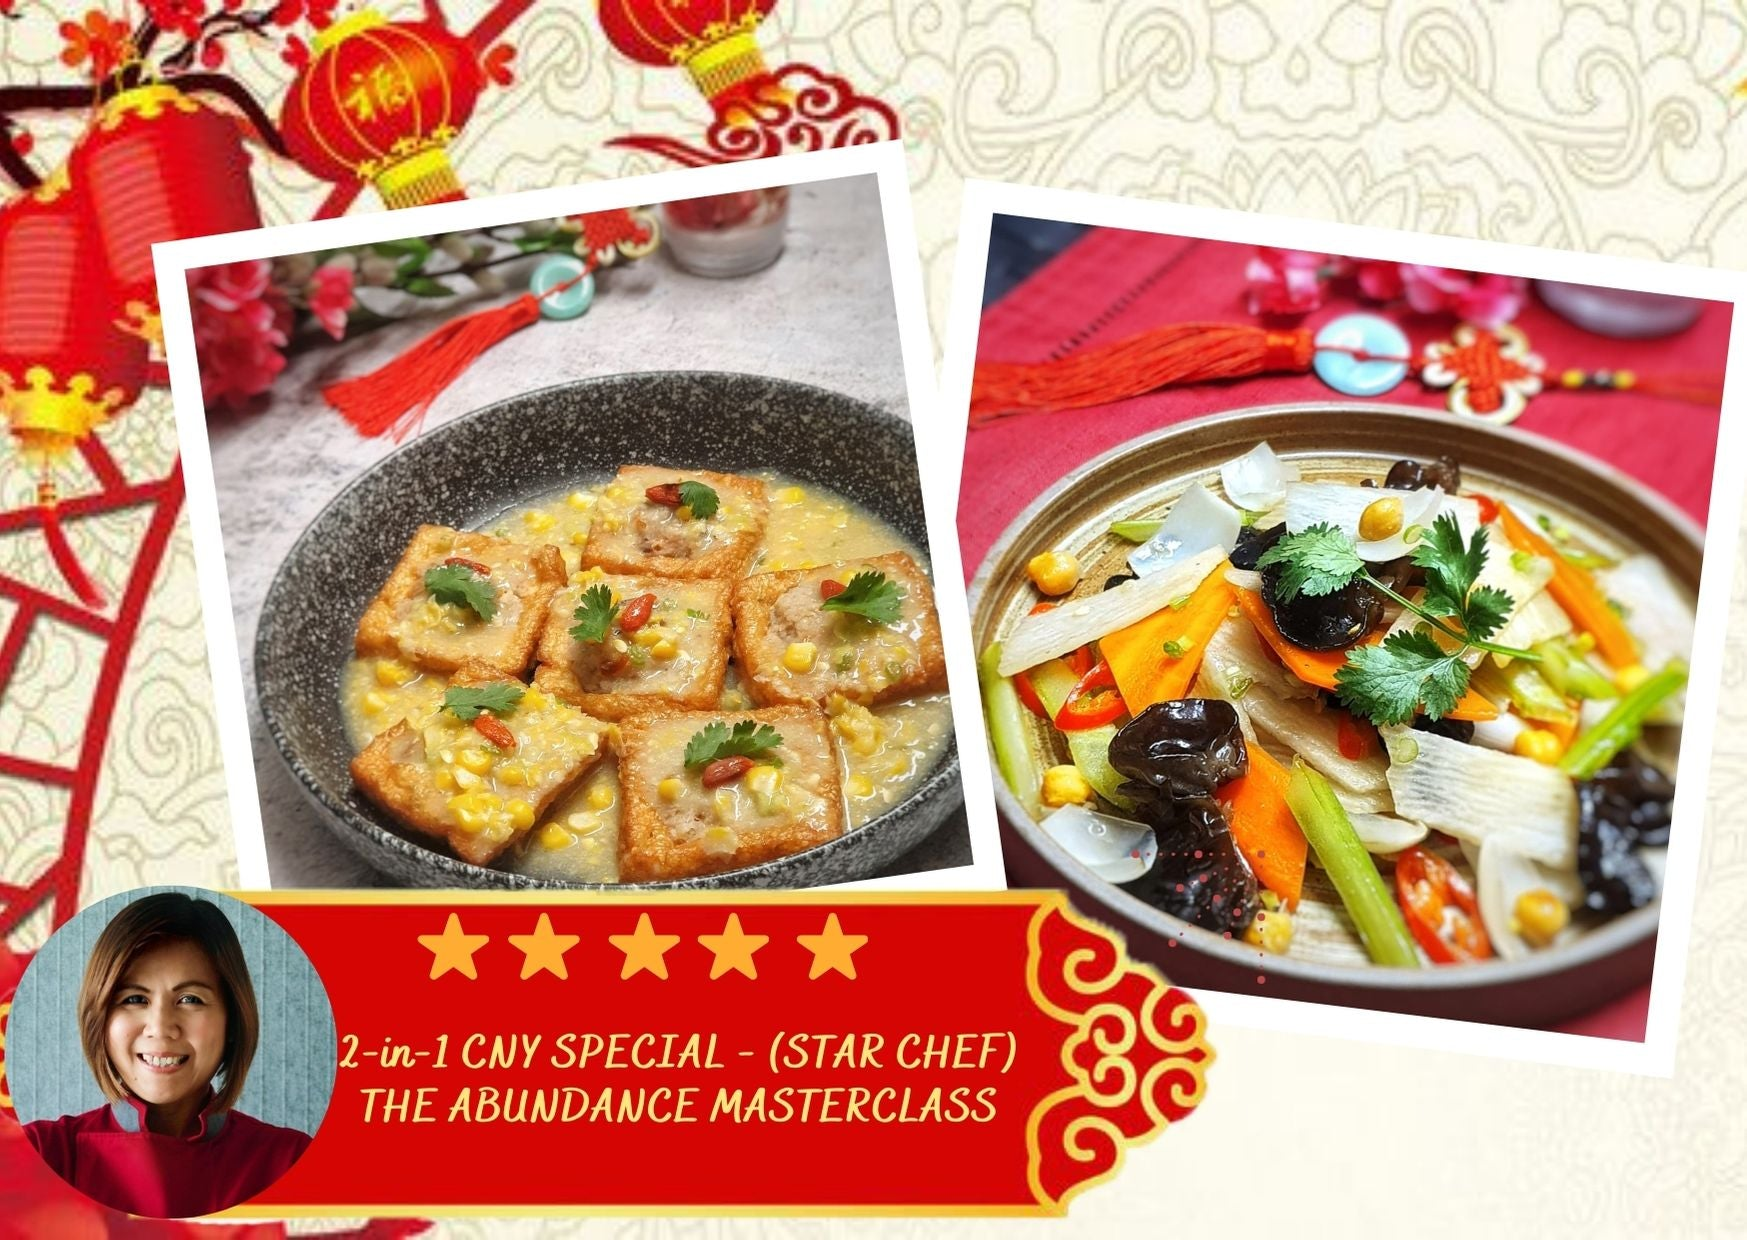 CNY - The Abundance Masterclass - Star Chef Series - NEW